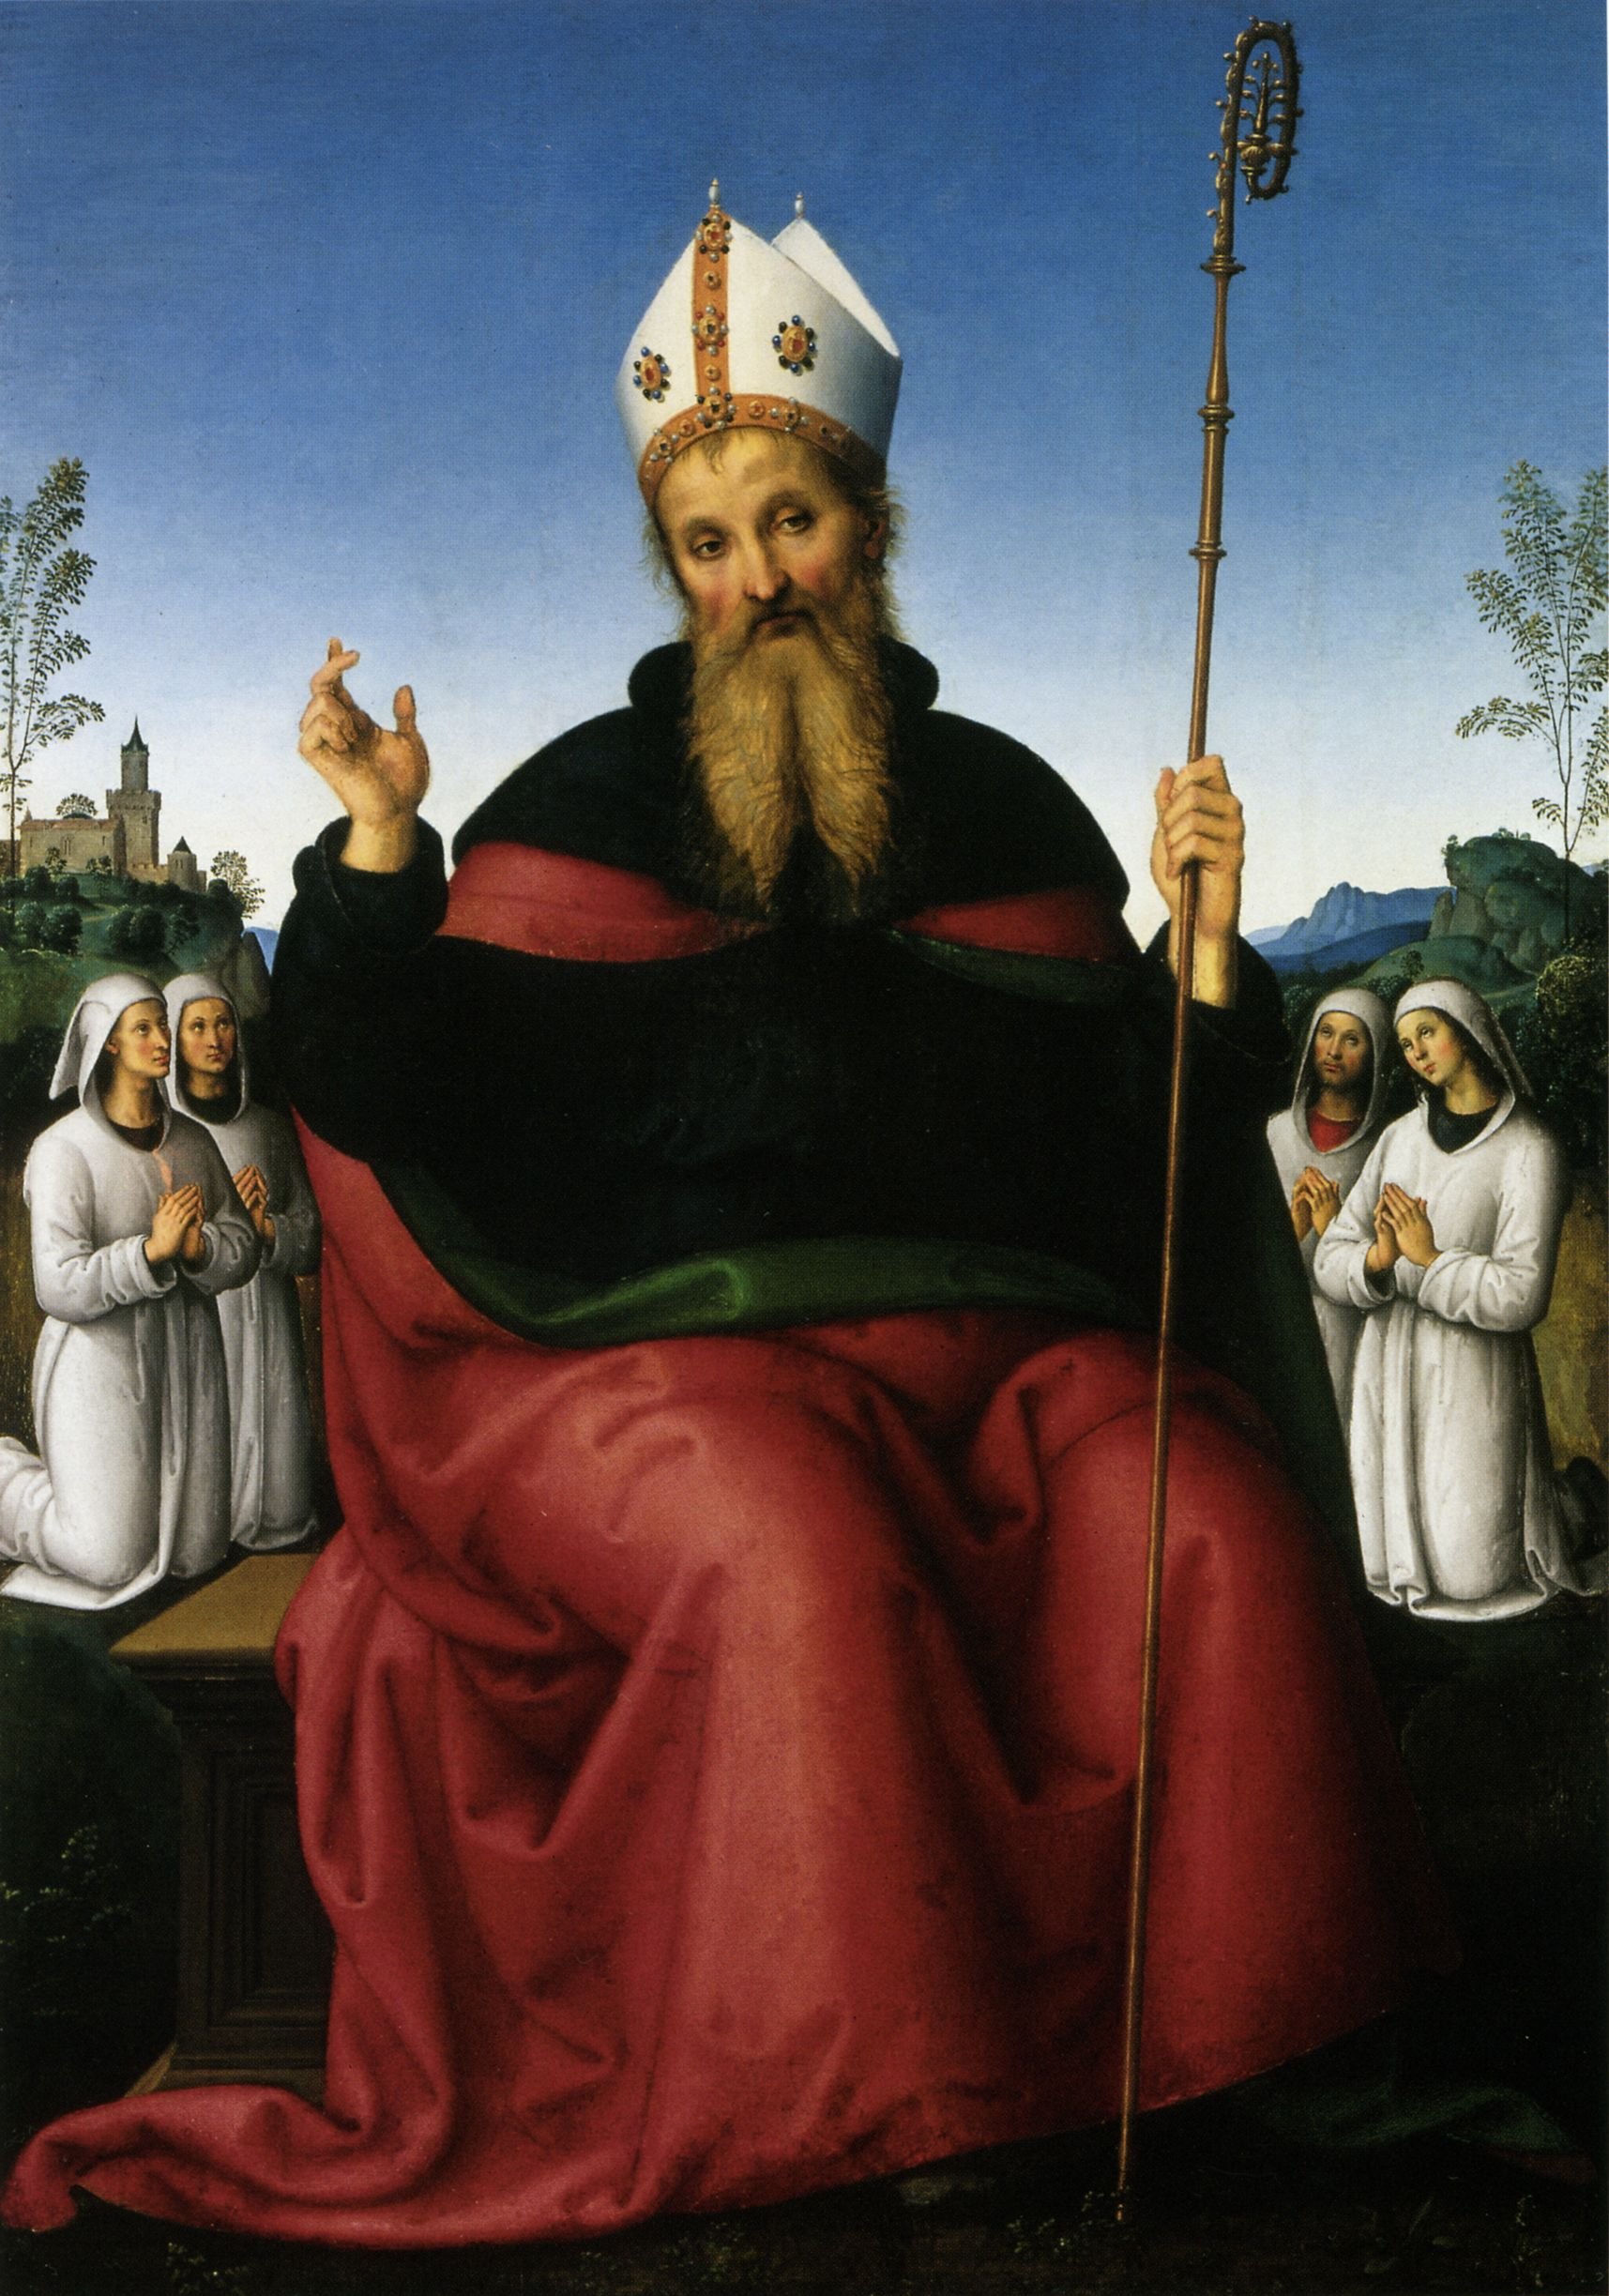 Augustine fetish art st o saint